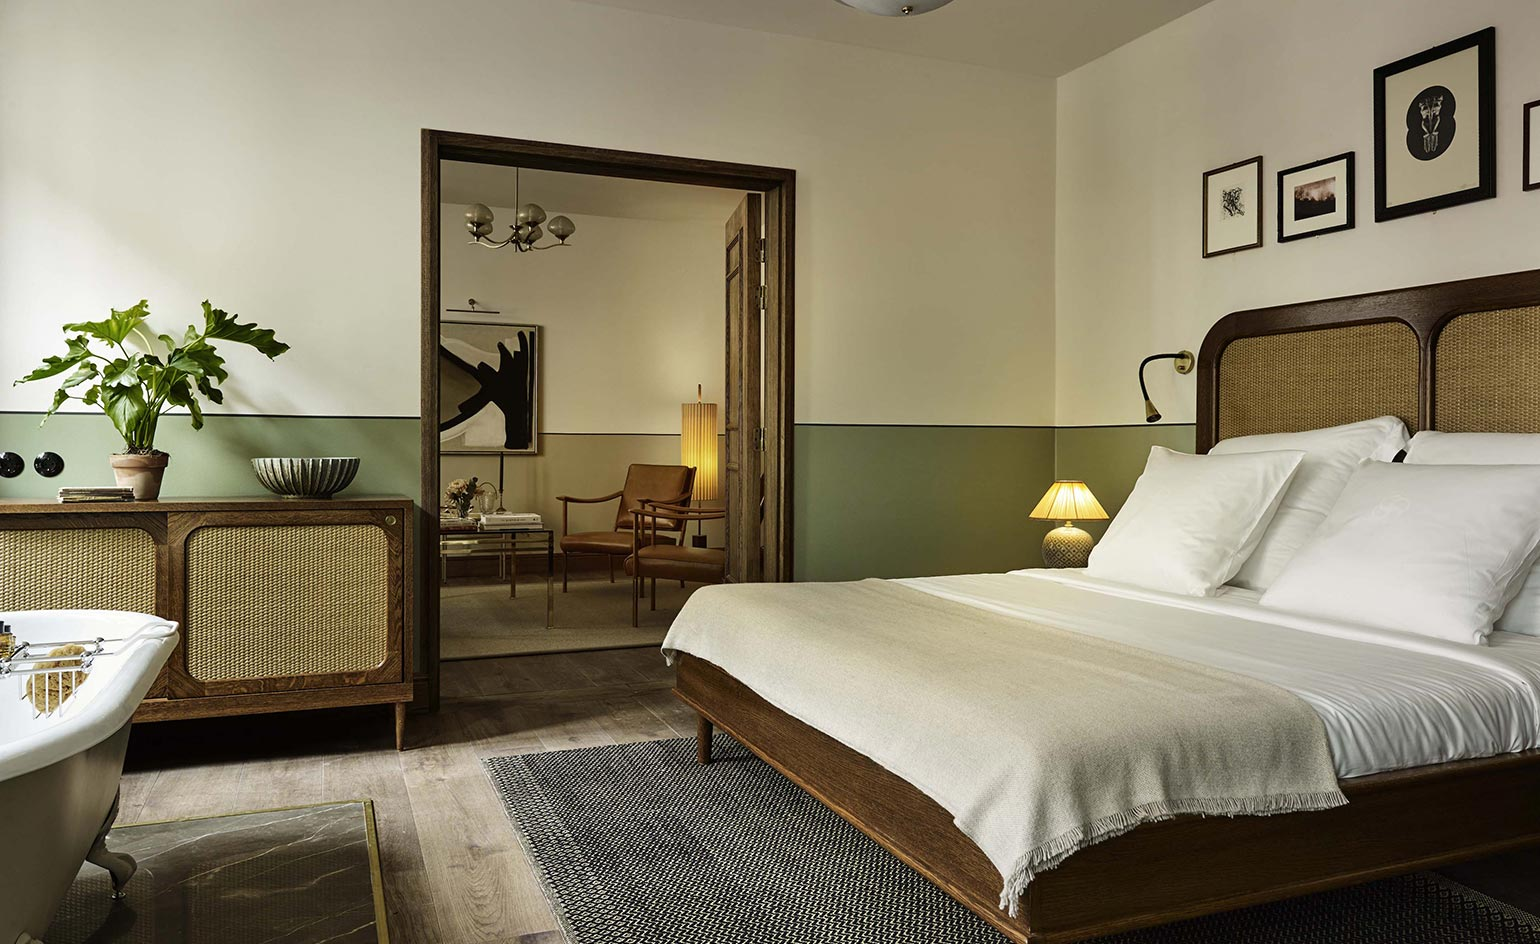 Centre stage copenhagen s first luxury boutique hotel for Boutique hotel idea 18